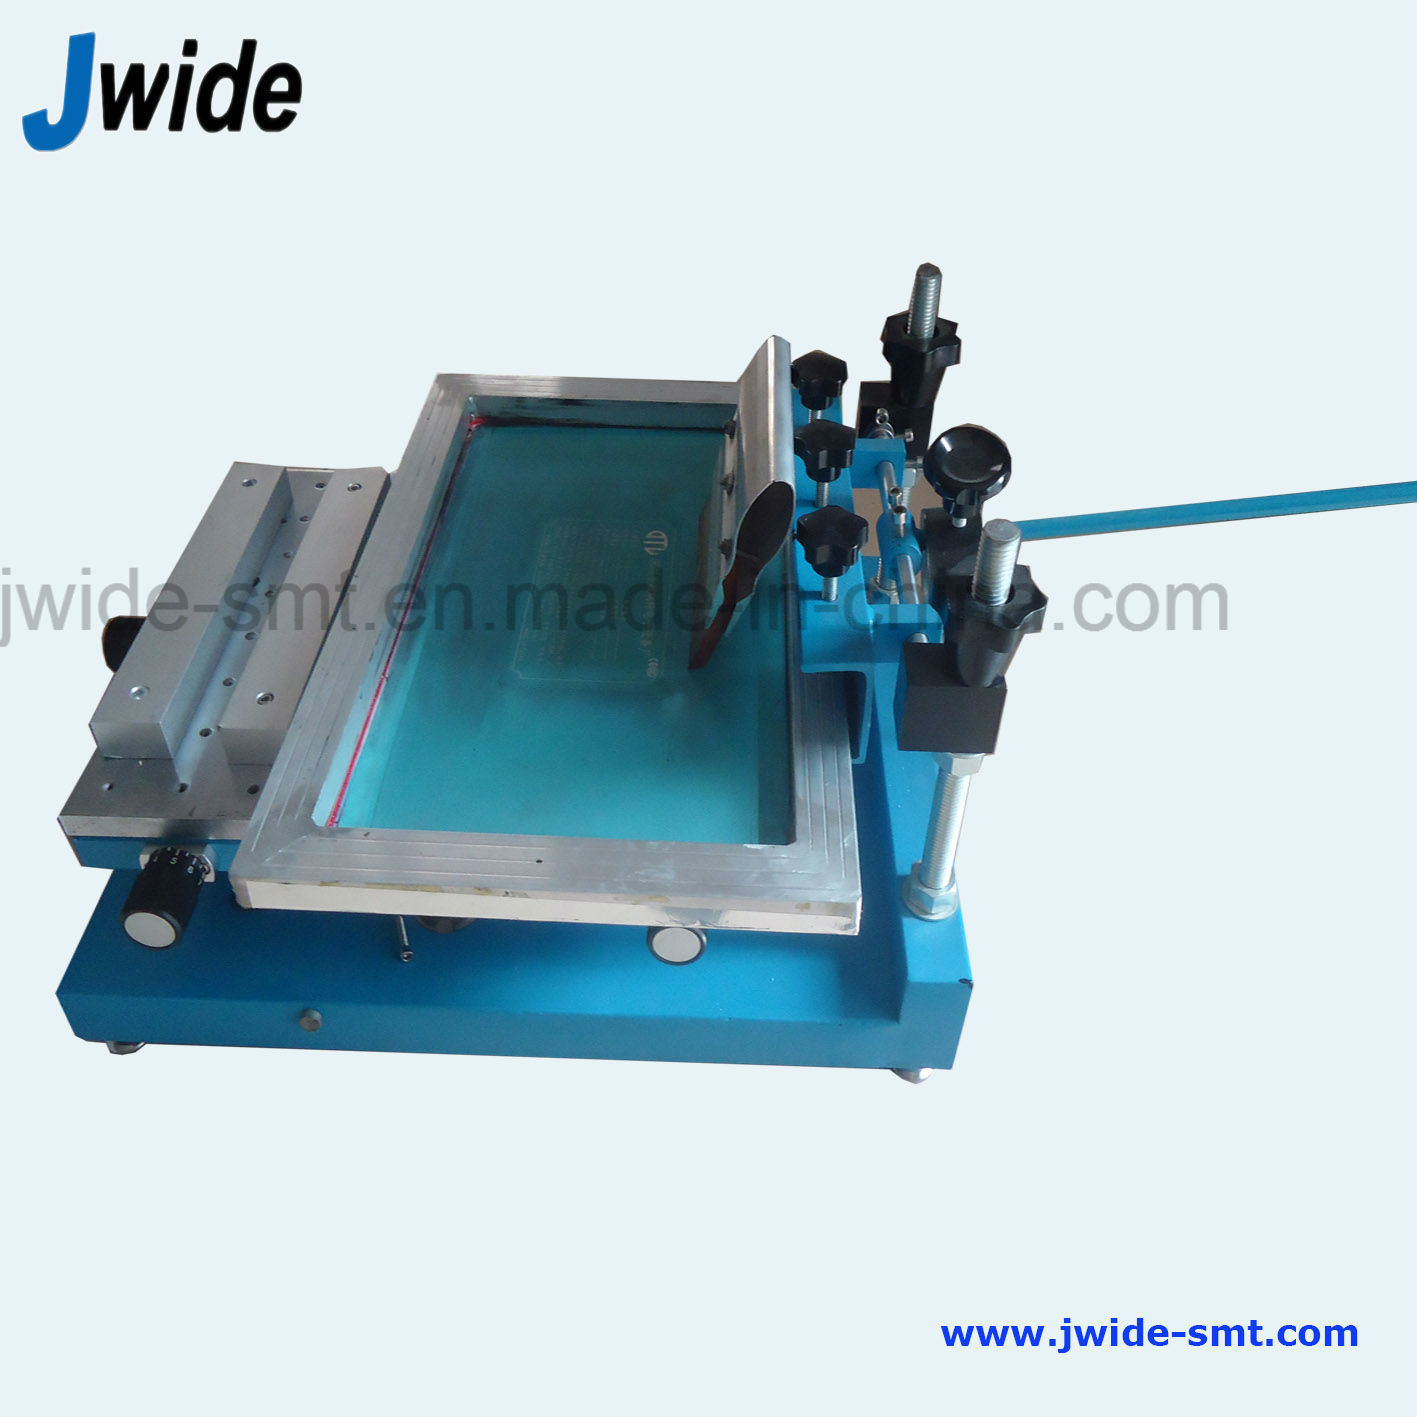 High Precision SMT Manual Stencil Printer